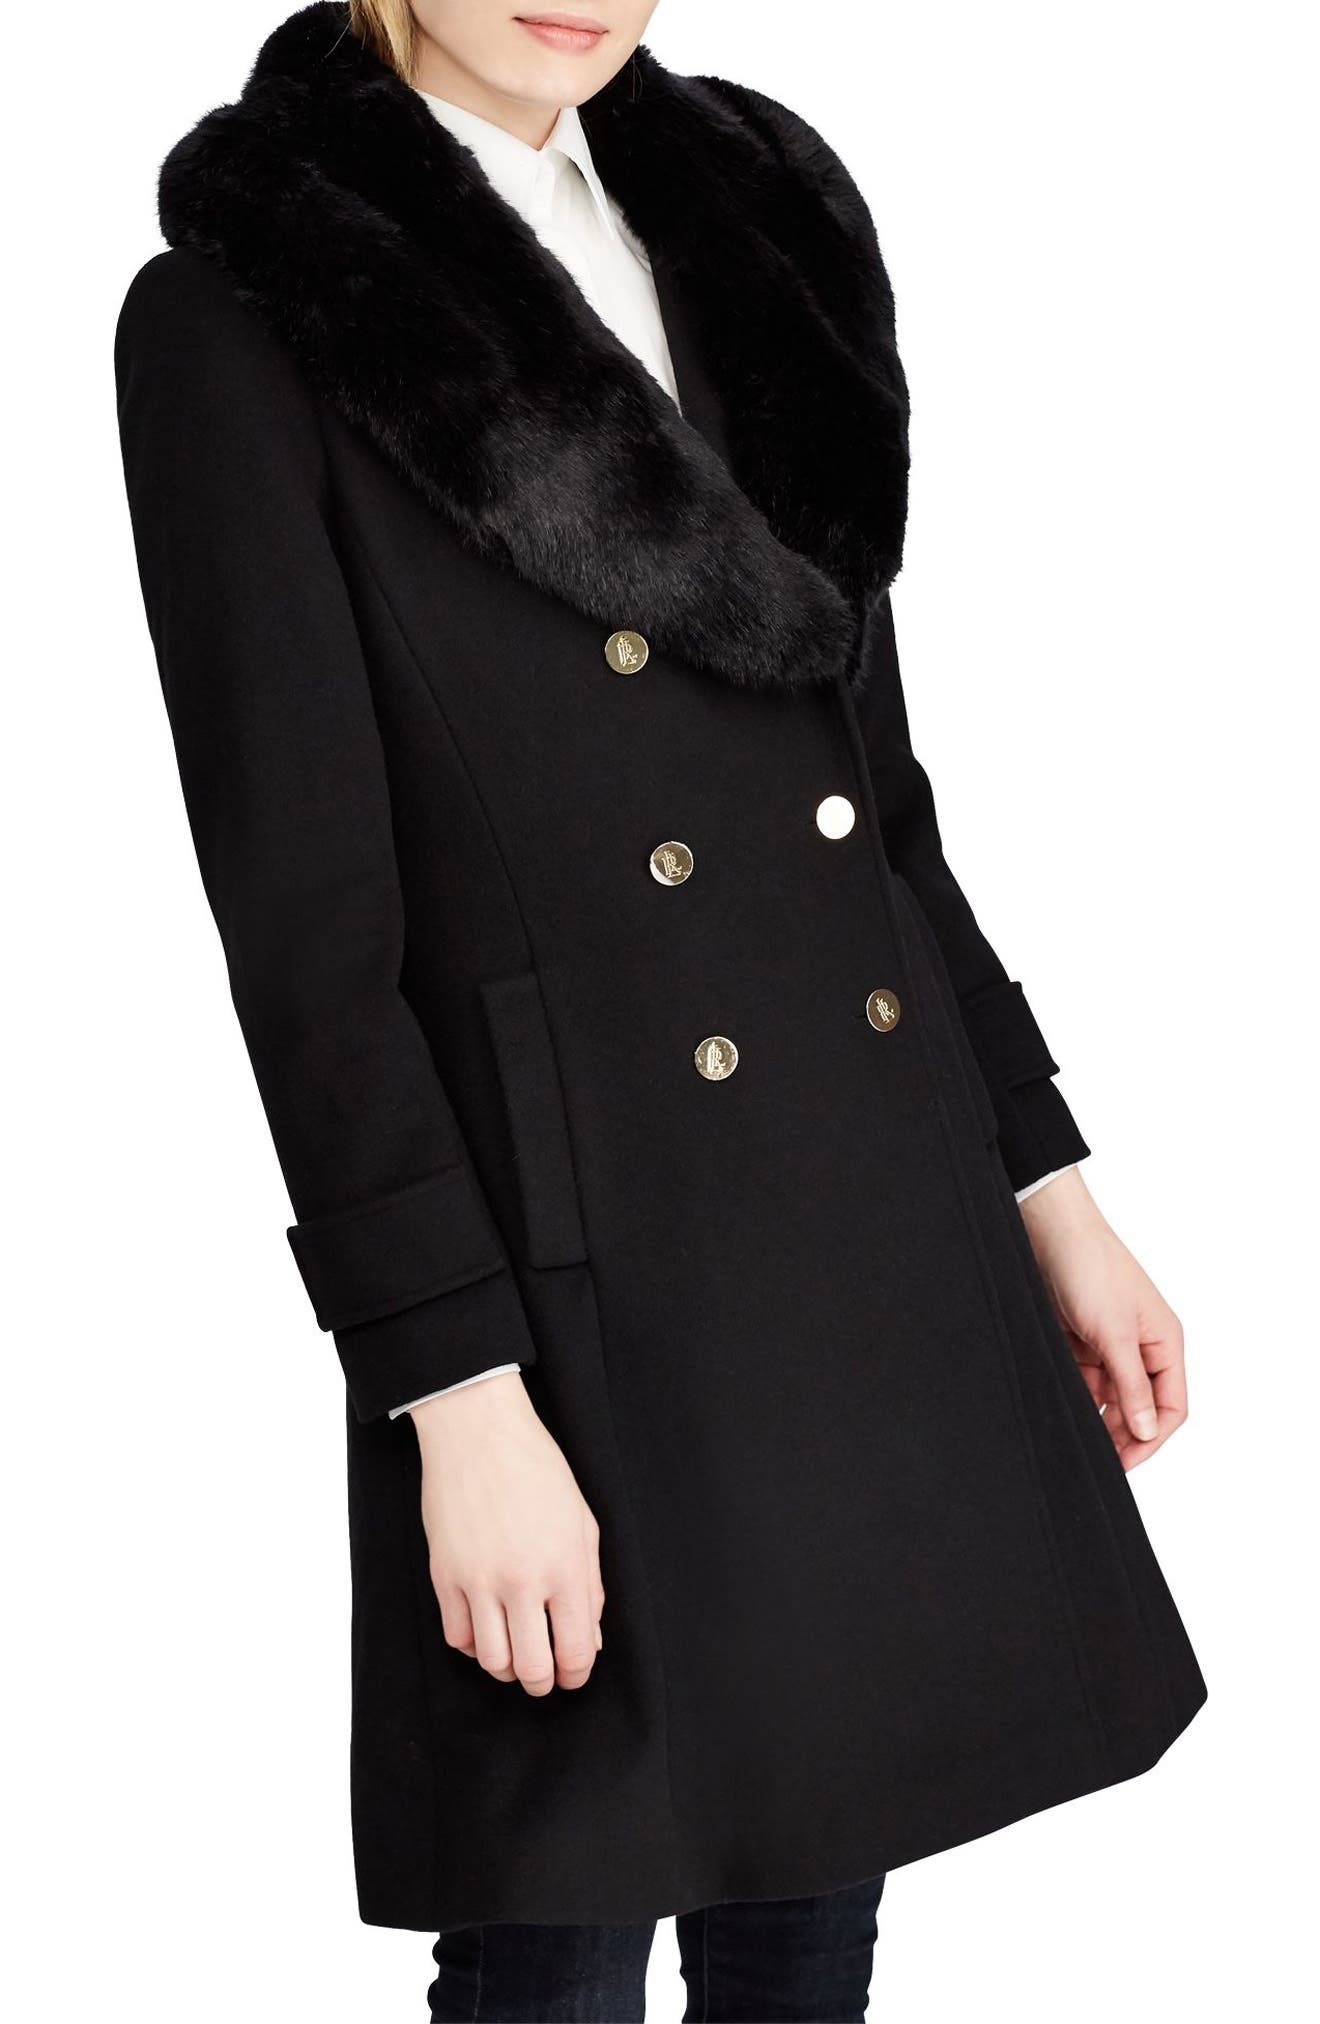 LAUREN RALPH LAUREN, Wool Blend Coat with Faux Fur Trim, Main thumbnail 1, color, BLACK